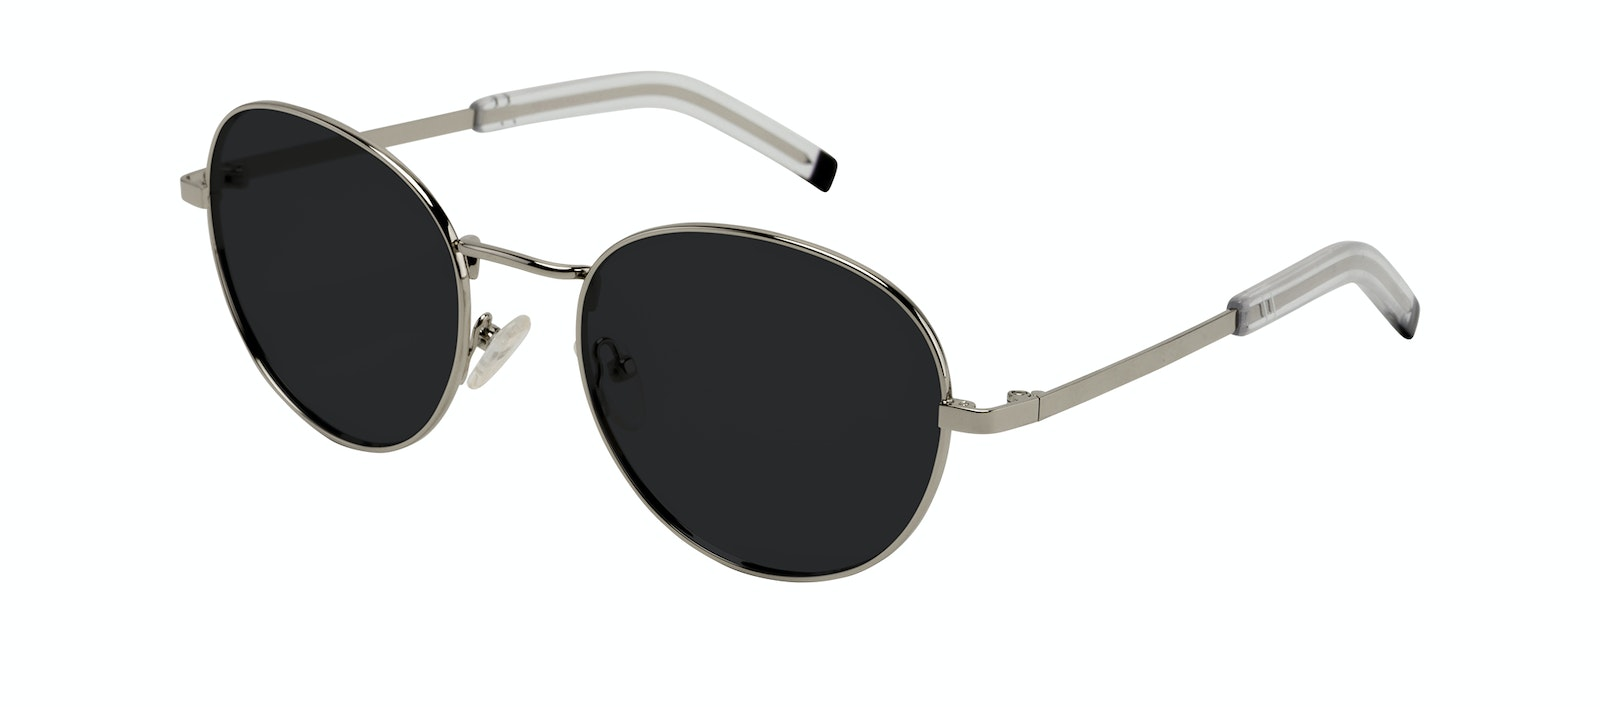 Affordable Fashion Glasses Round Sunglasses Men Lean XL Silver Tilt